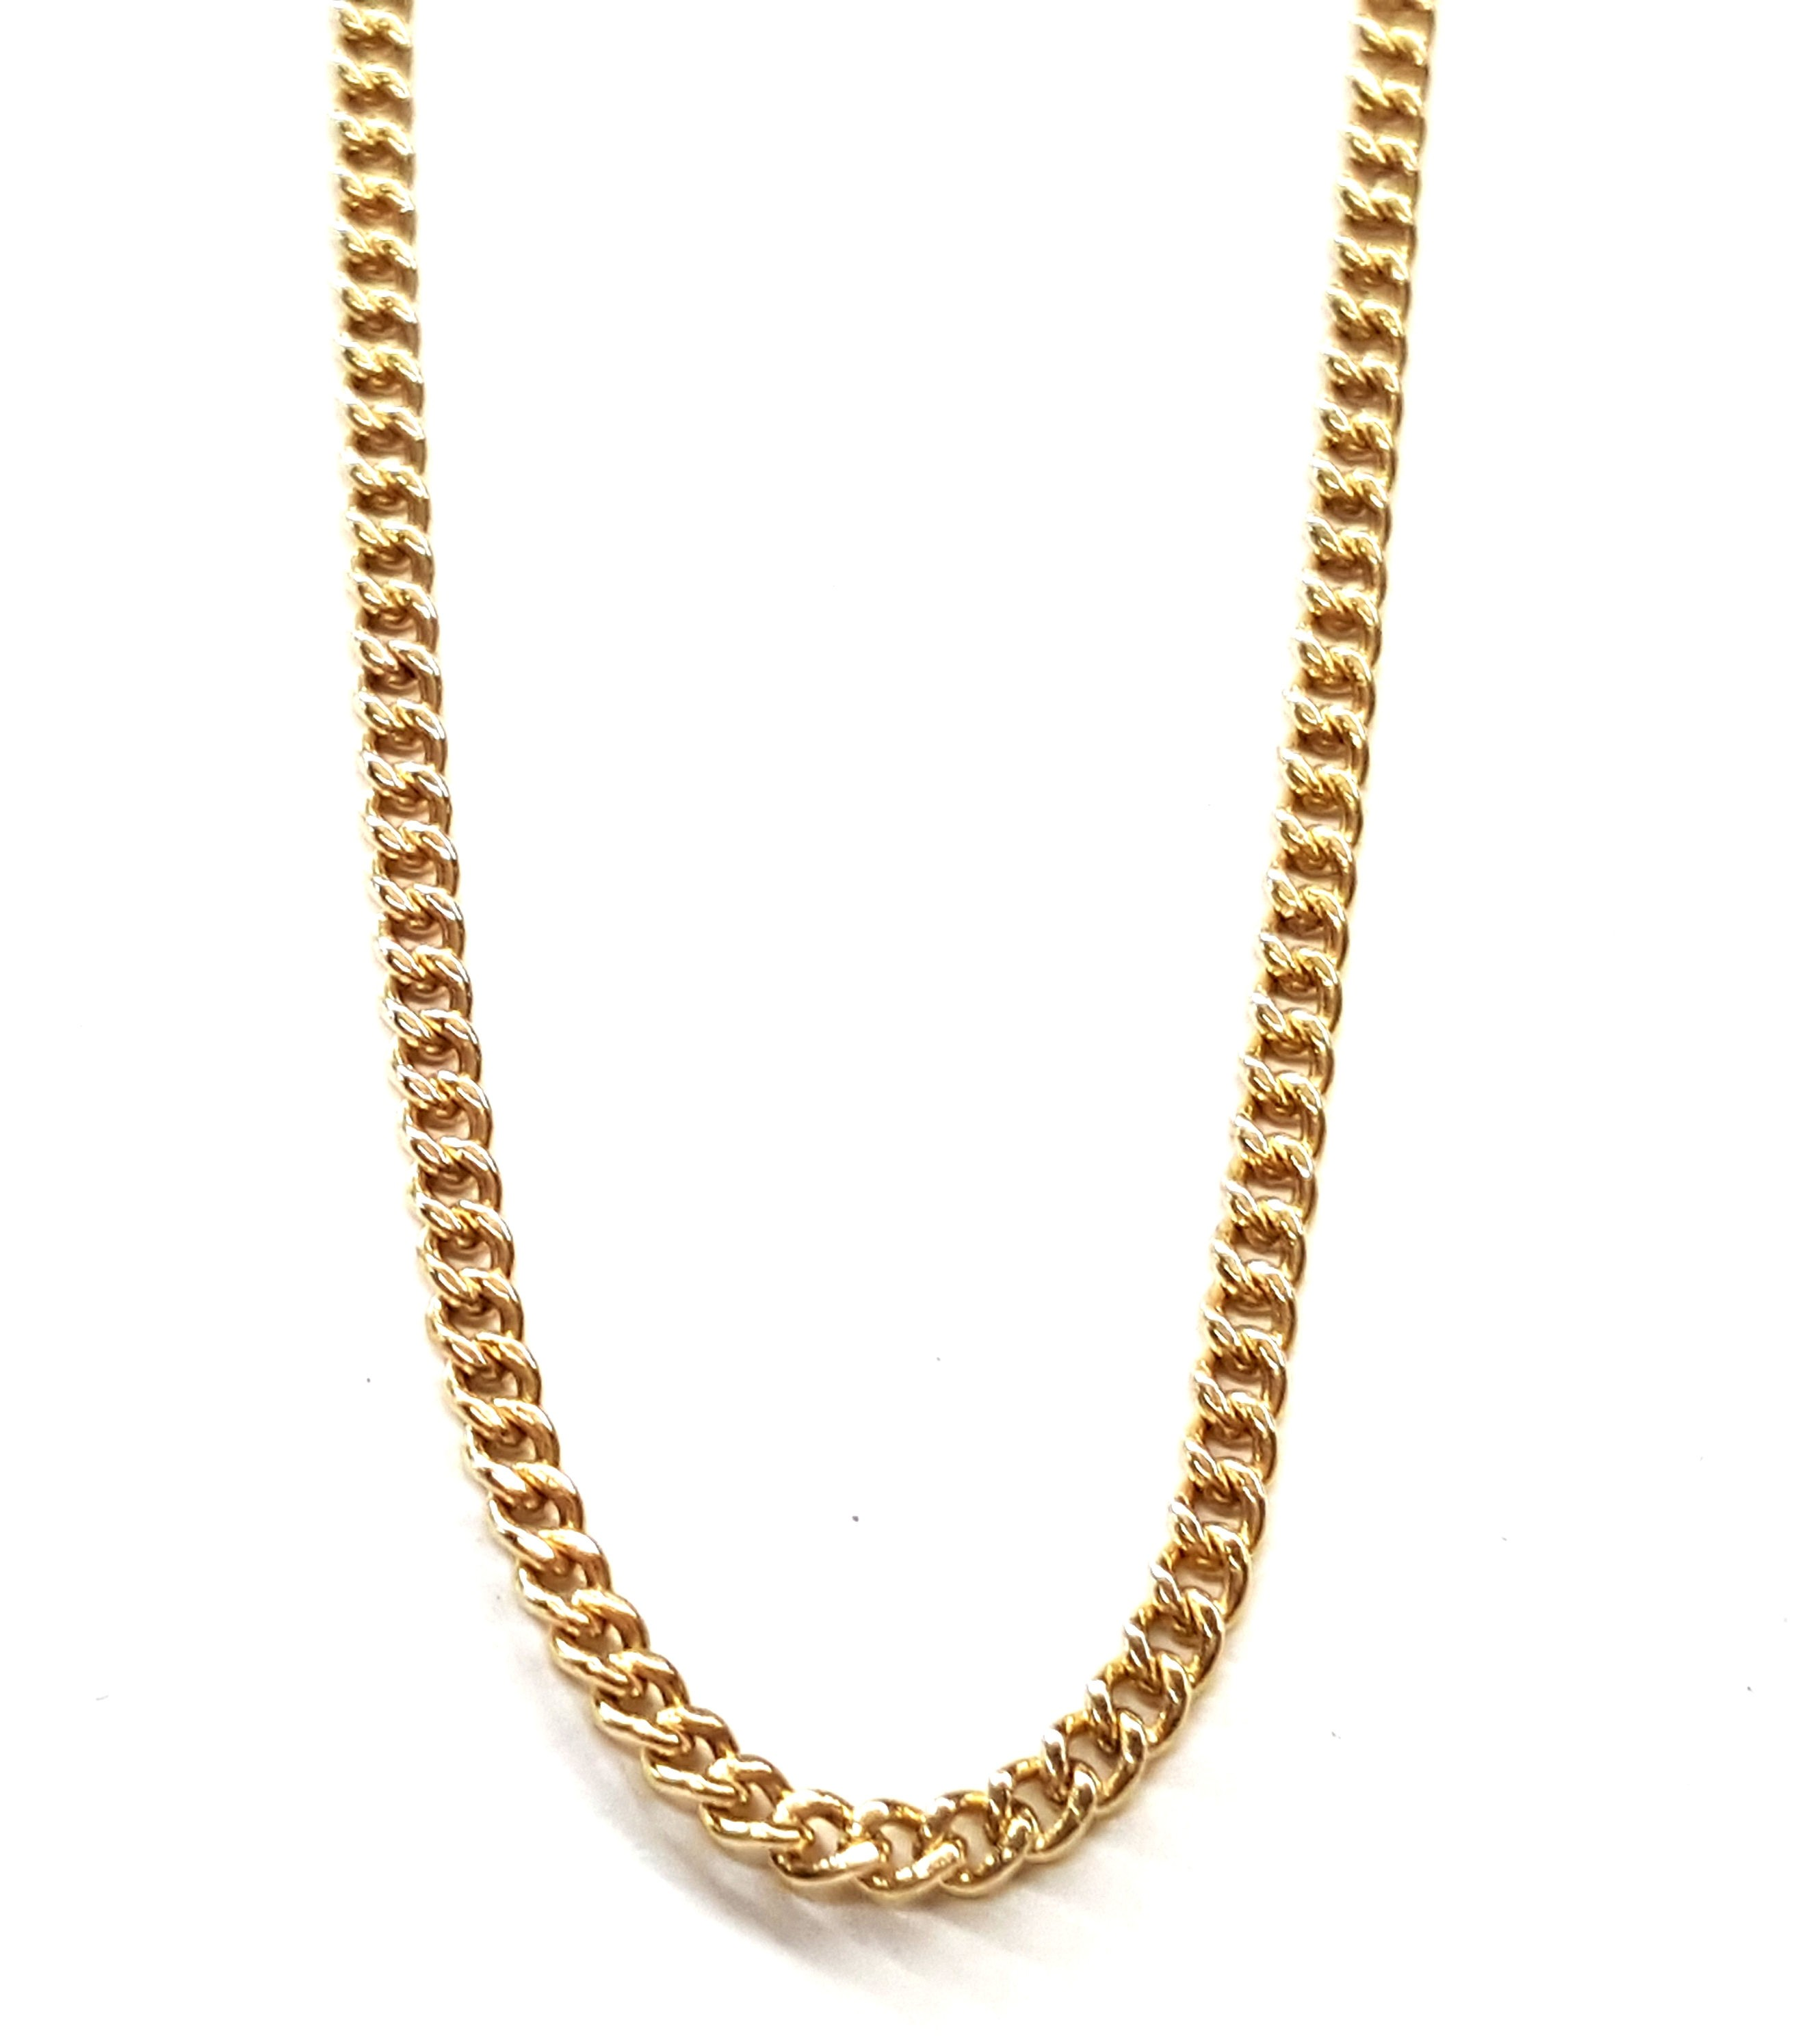 "Curb style link chain 21"" long 2mm wide"